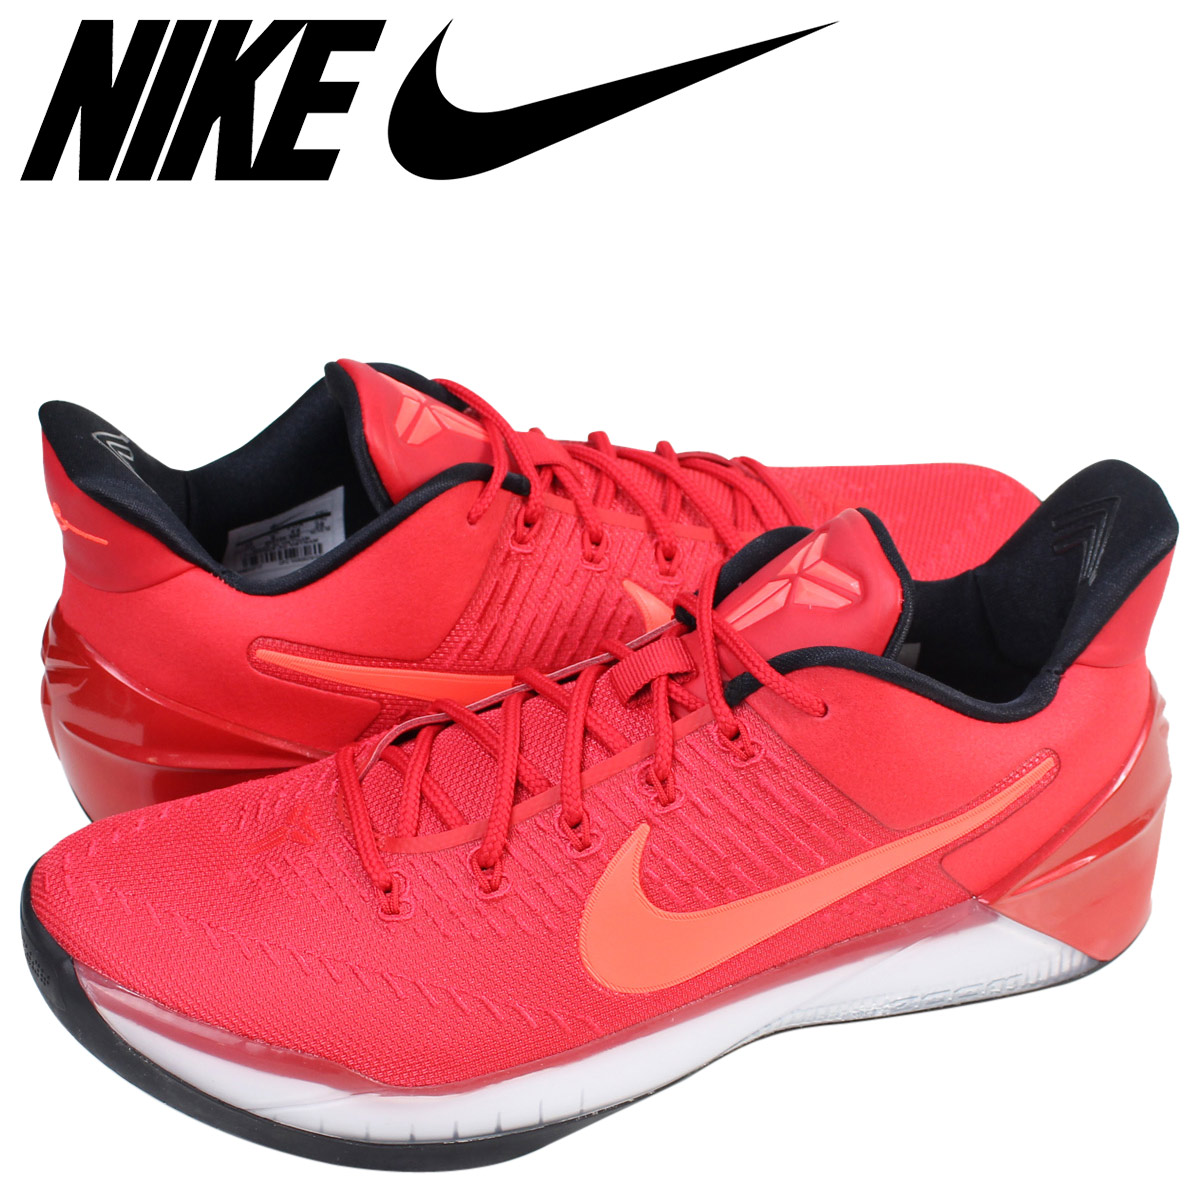 975d5bee5c8c SneaK Online Shop   up to 800 yen OFF coupon  Nike NIKE Corby sneakers KOBE  A.D. 852